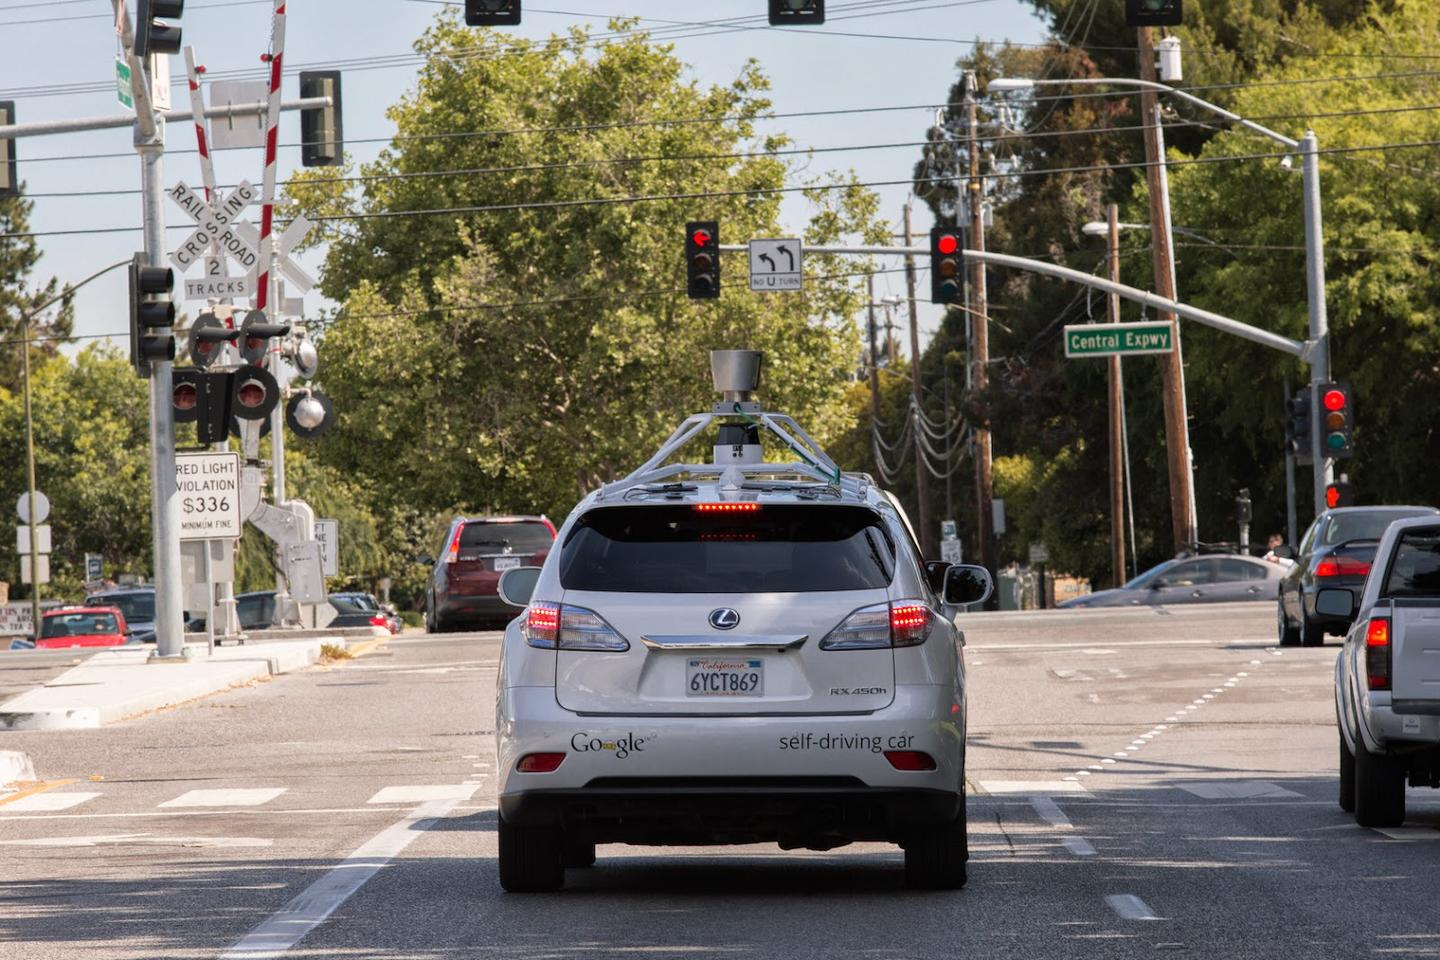 The Californian Department of Motor Vehicles (DMV) has released guidelines for testing of autonomous vehicles such as Google's self-driving car (Photo: Google)